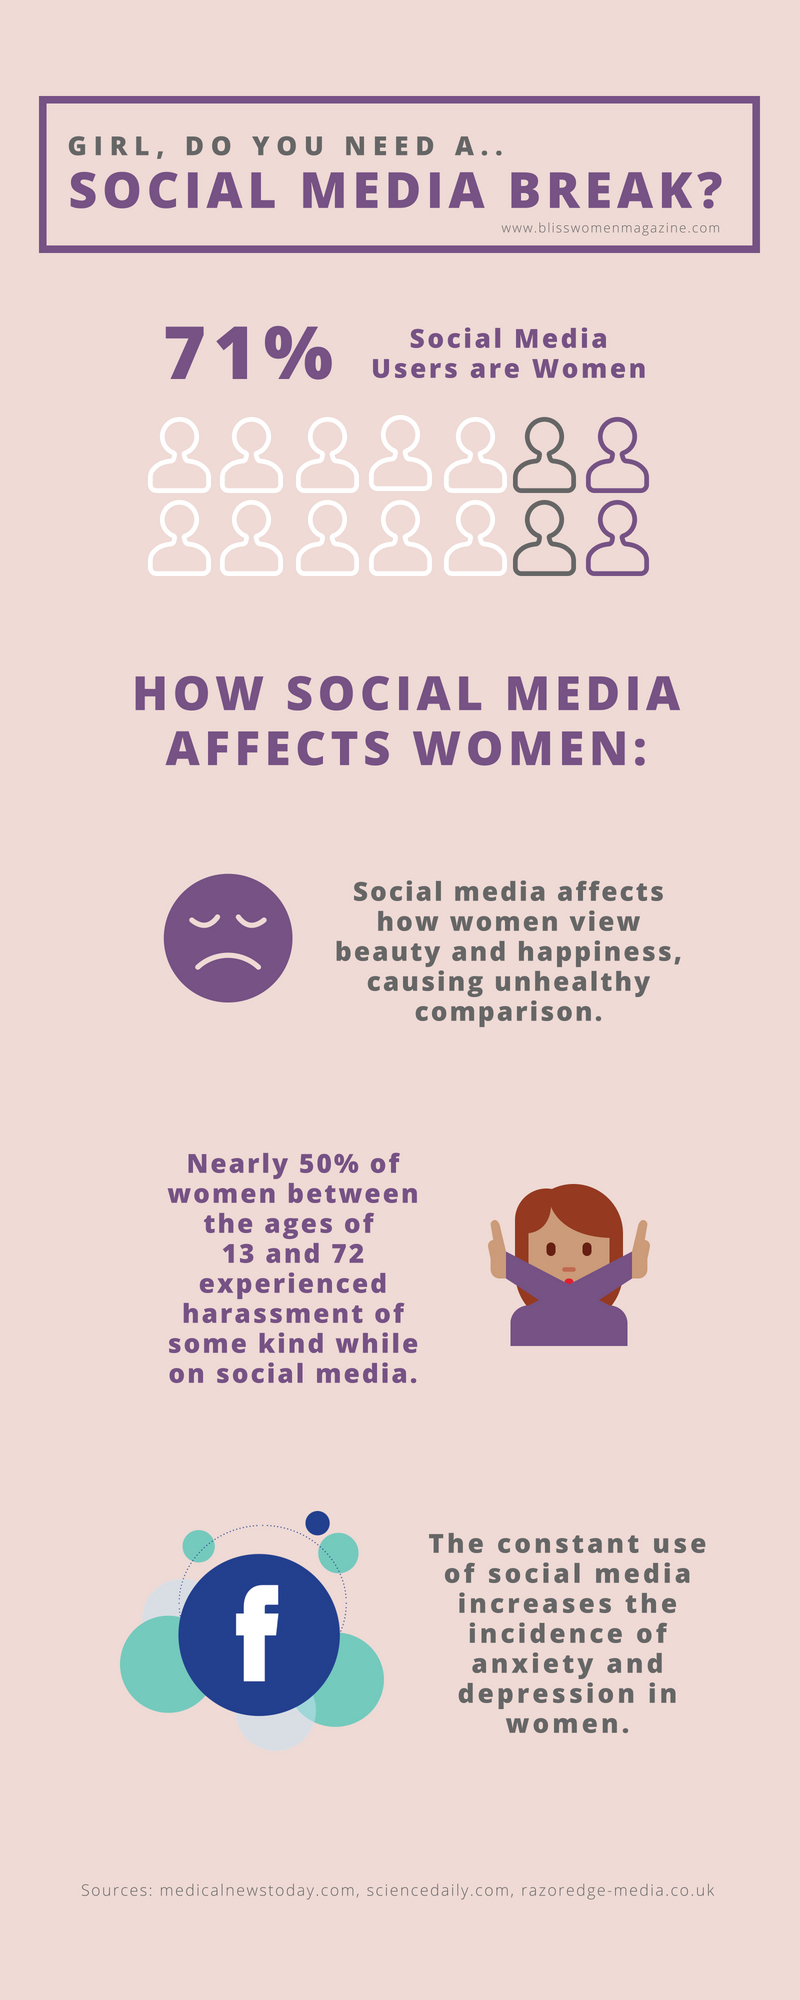 Bliss Women Social Media Detox Infographic.jpg